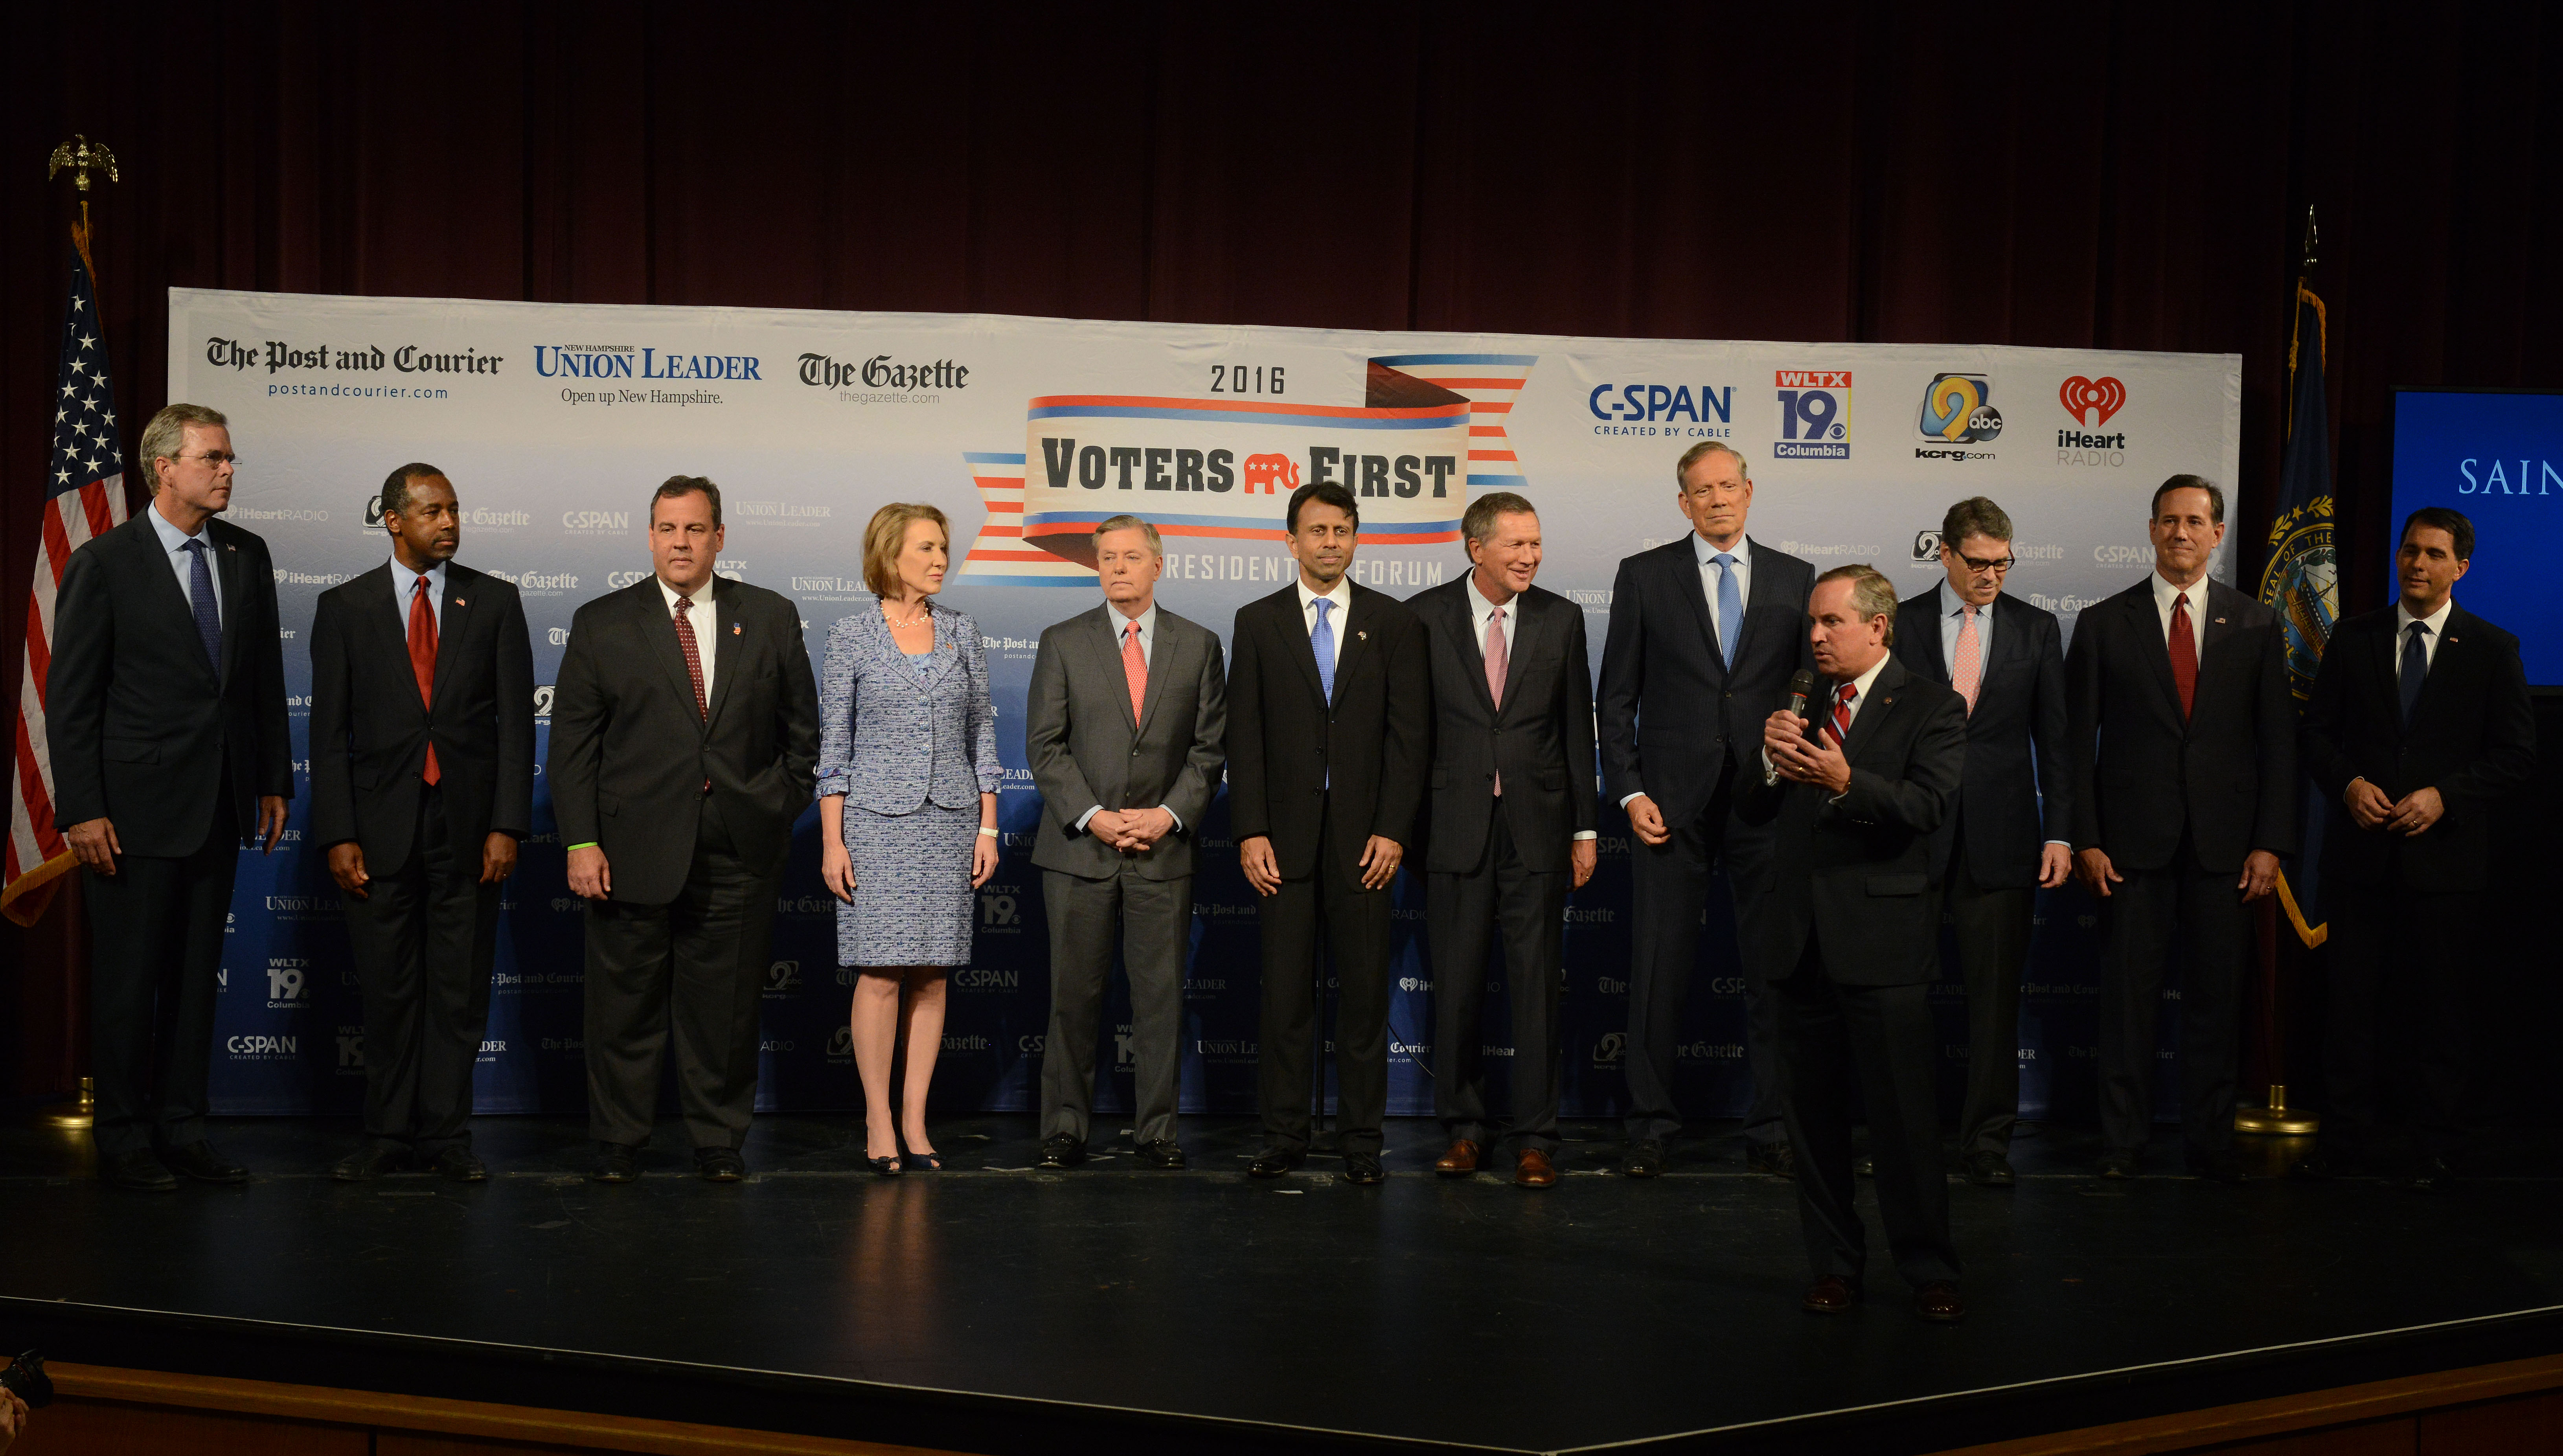 Election Fox News Announces Participants In First GOP Debate - Fox news electionelection results us county map